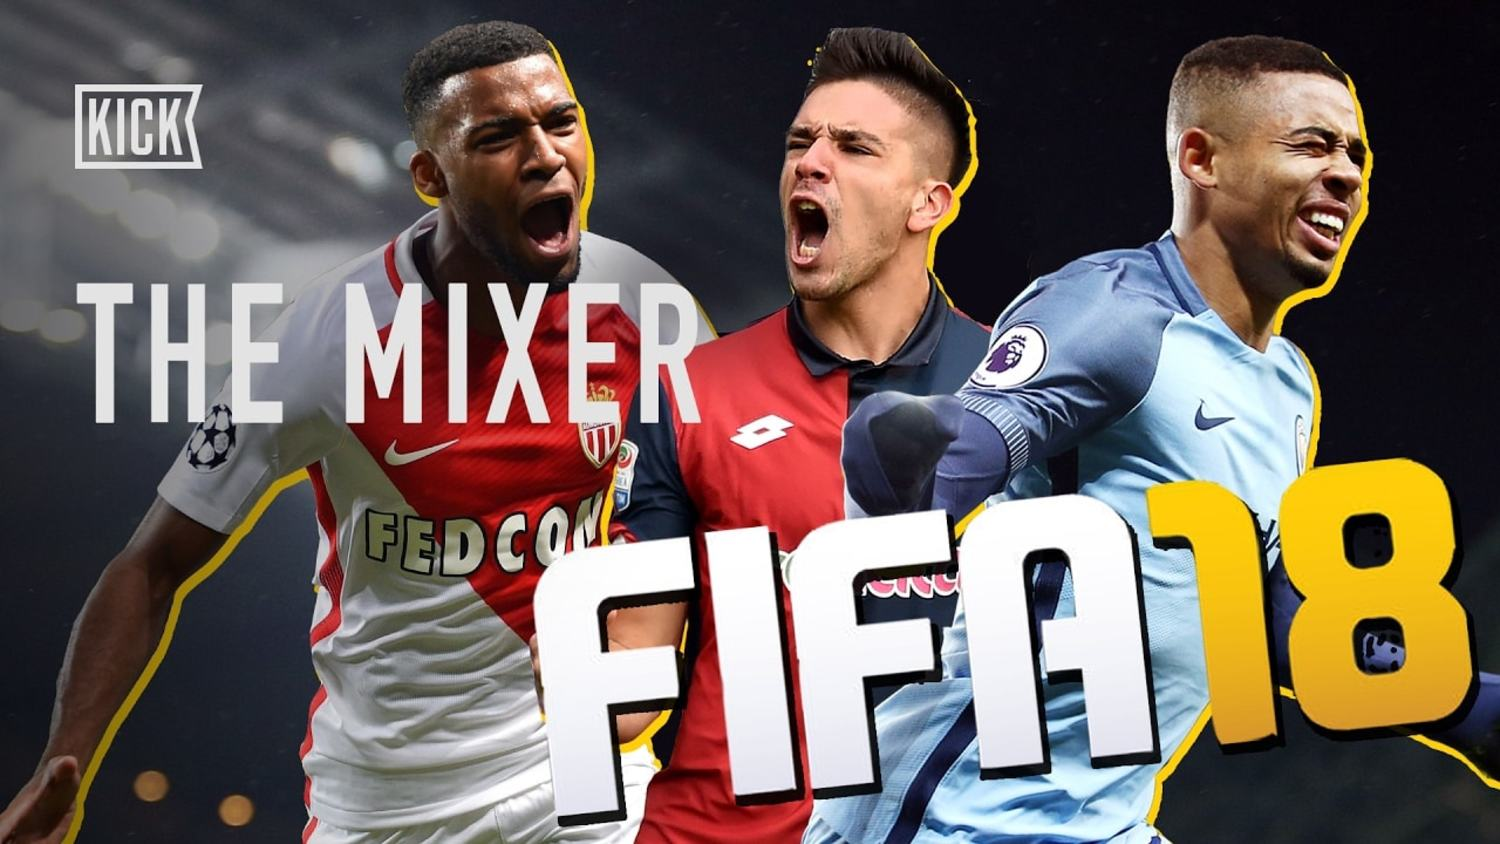 7 Wonderkids To Watch For In FIFA 18 - The Mixer